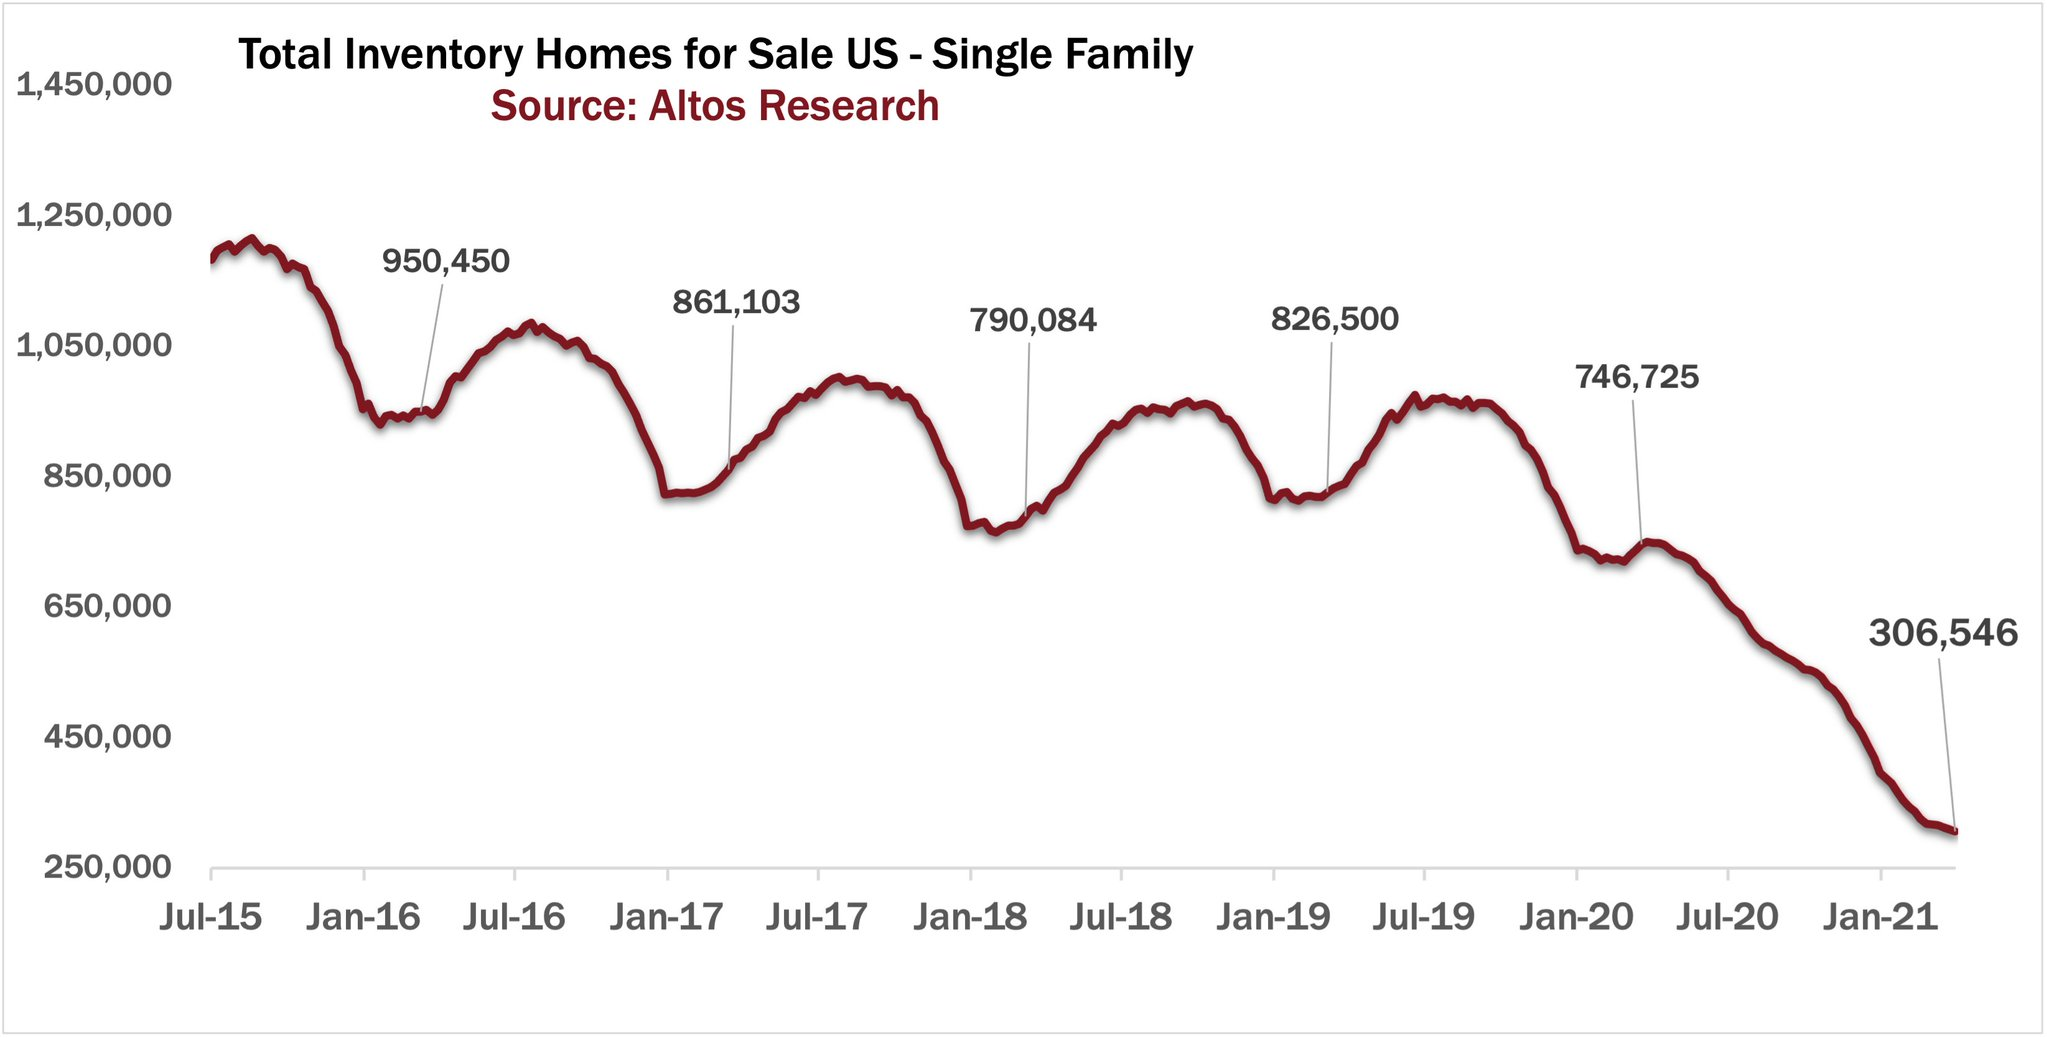 total inventory homes for sale in the U.S. - single family